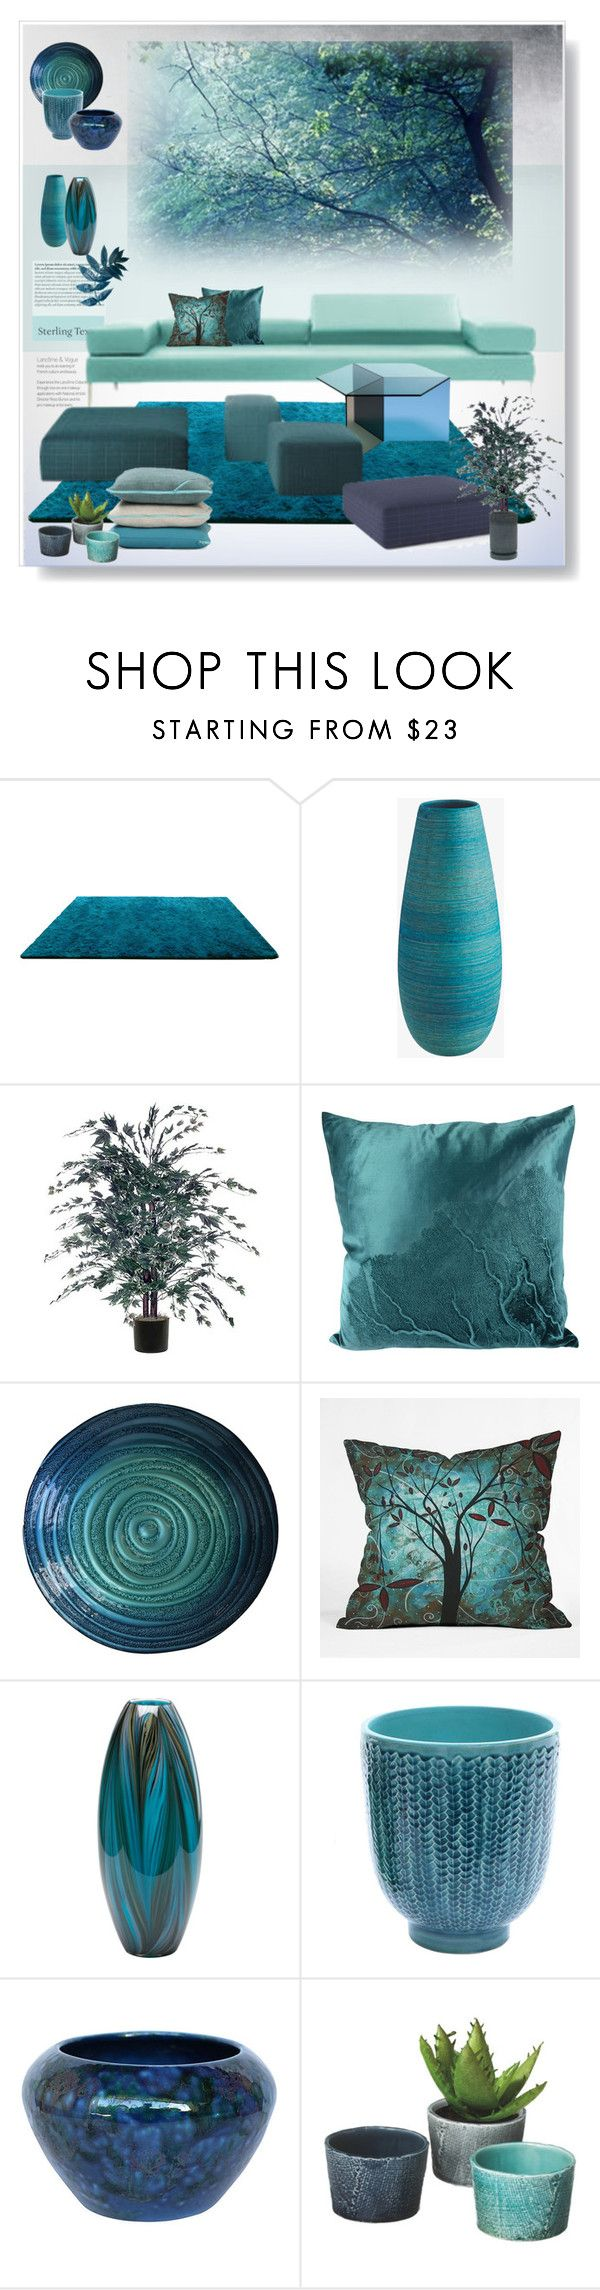 """""""Living Space"""" by snowbell on Polyvore featuring interior, interiors, interior design, home, home decor, interior decorating, Tiffany & Co., DENY Designs, Cyan Design and Dot & Bo"""